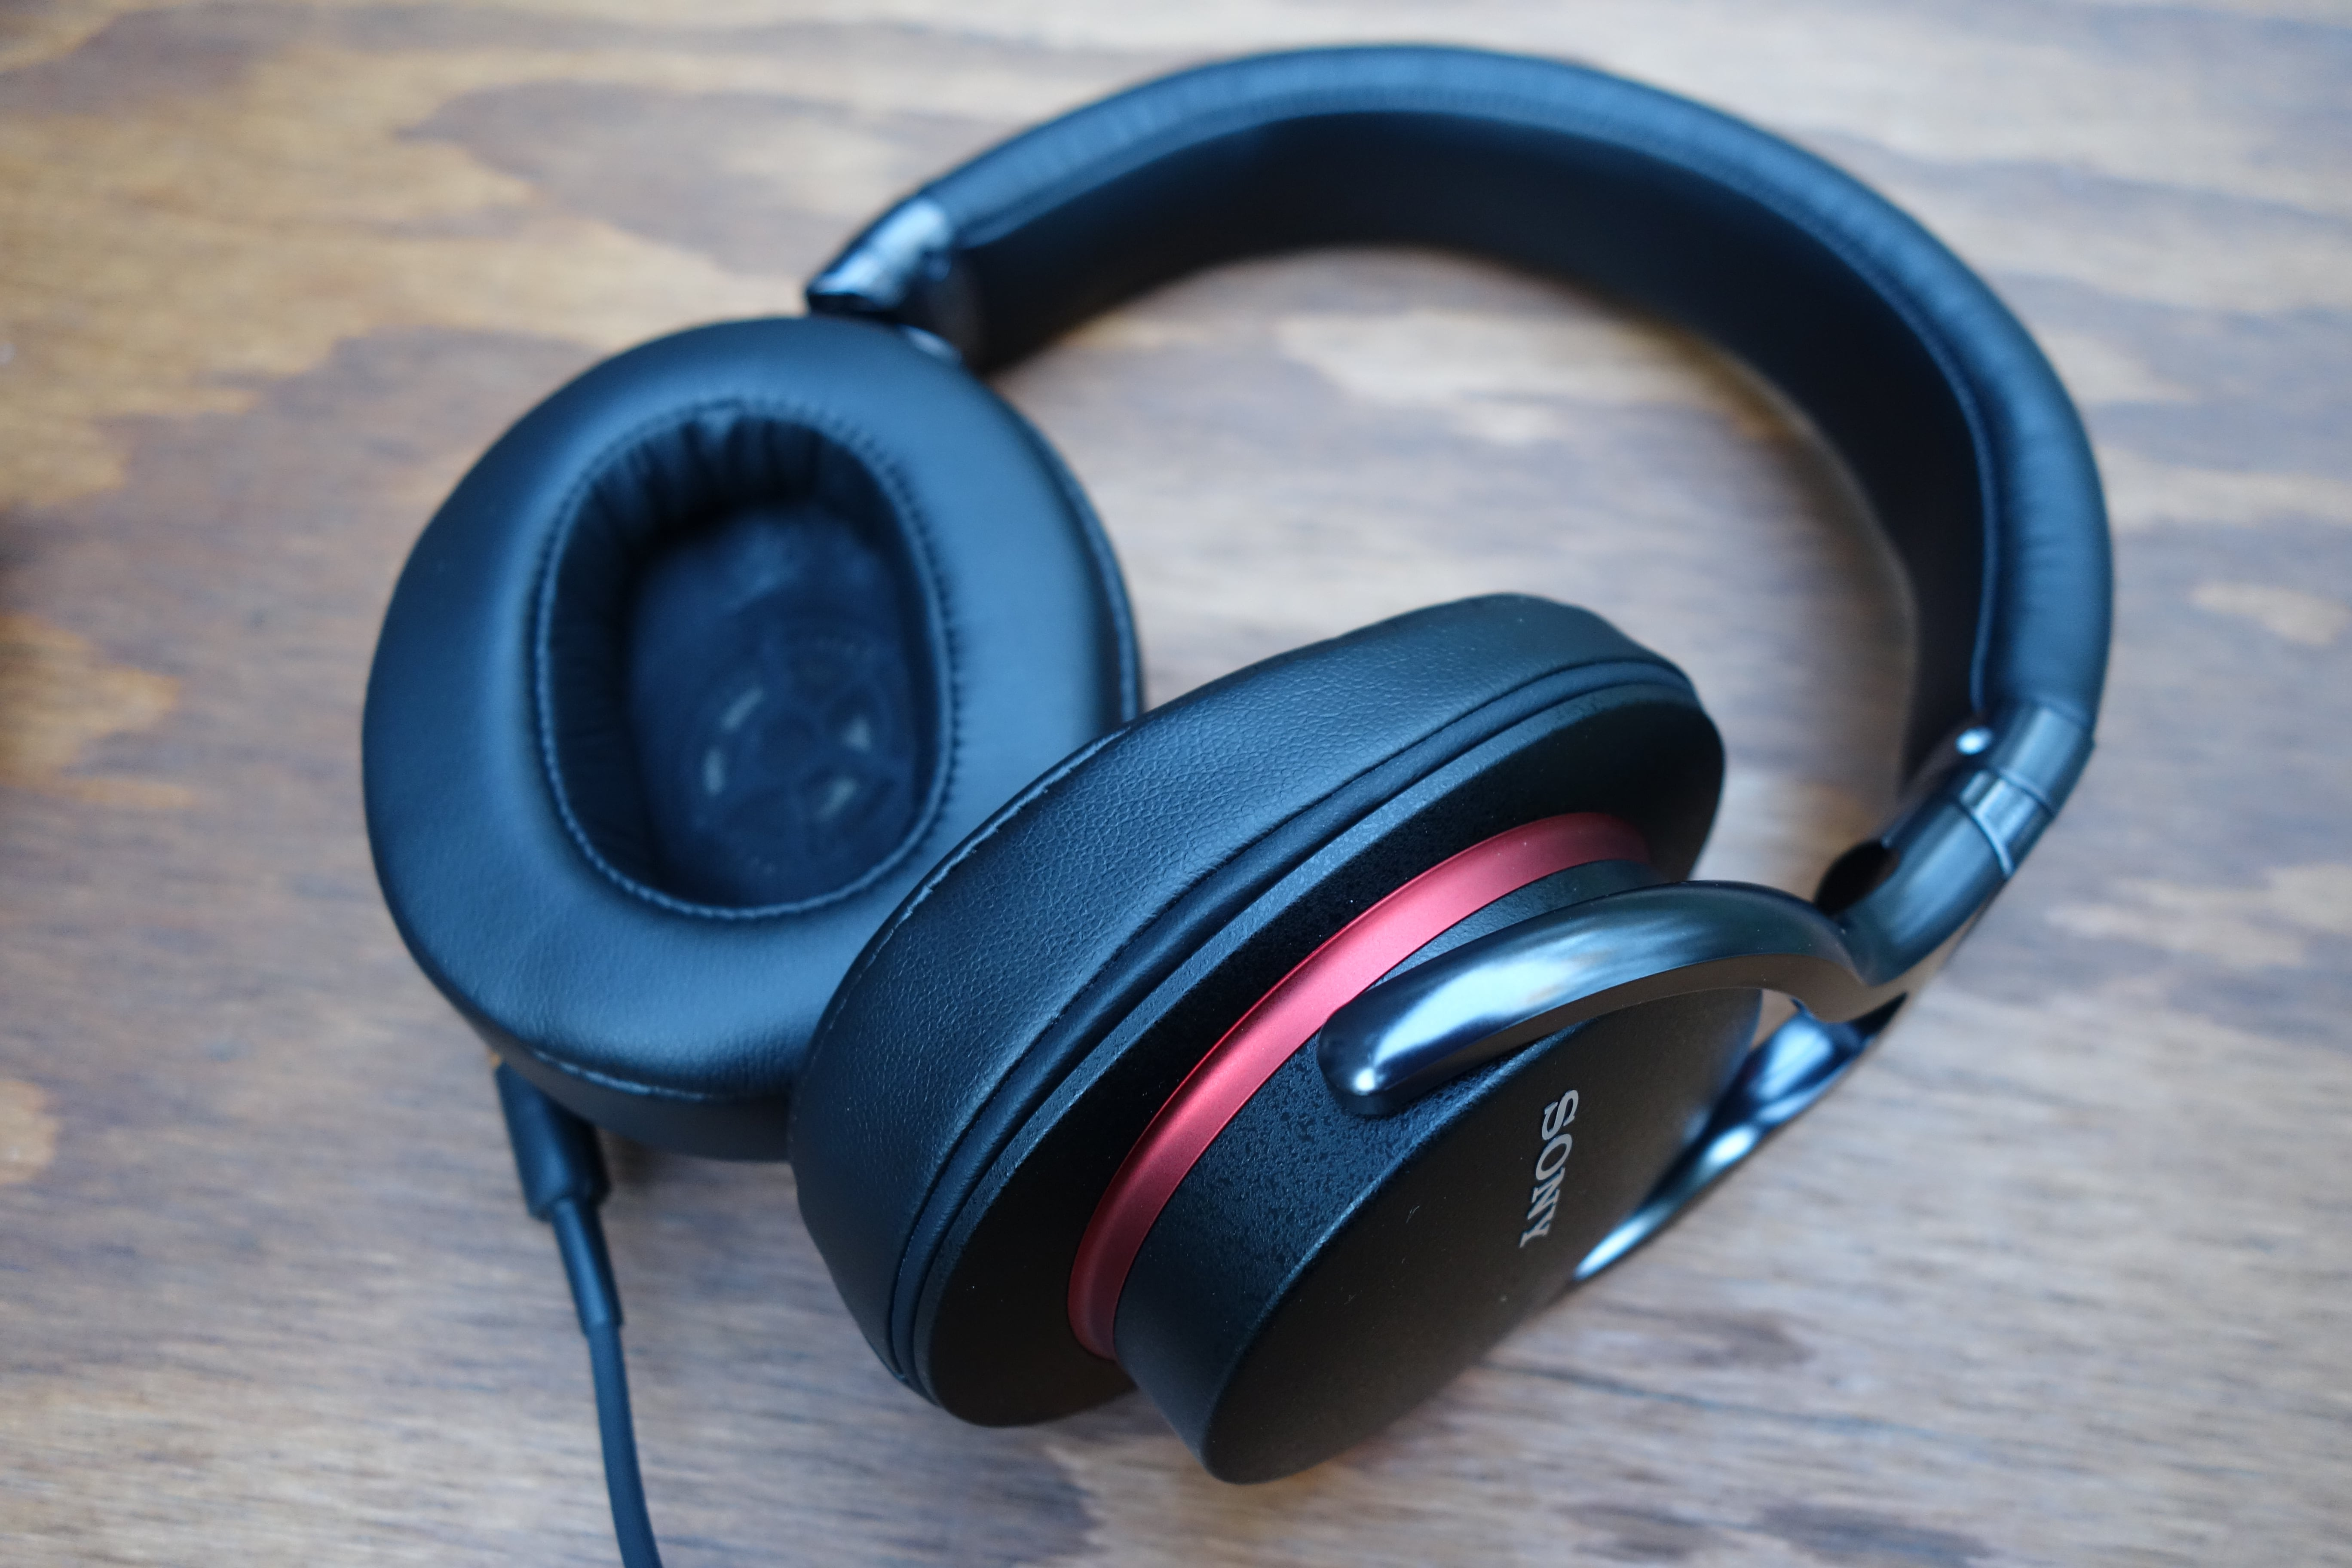 Sony Mdr 1a Over Ear Headphones Review Classy On The